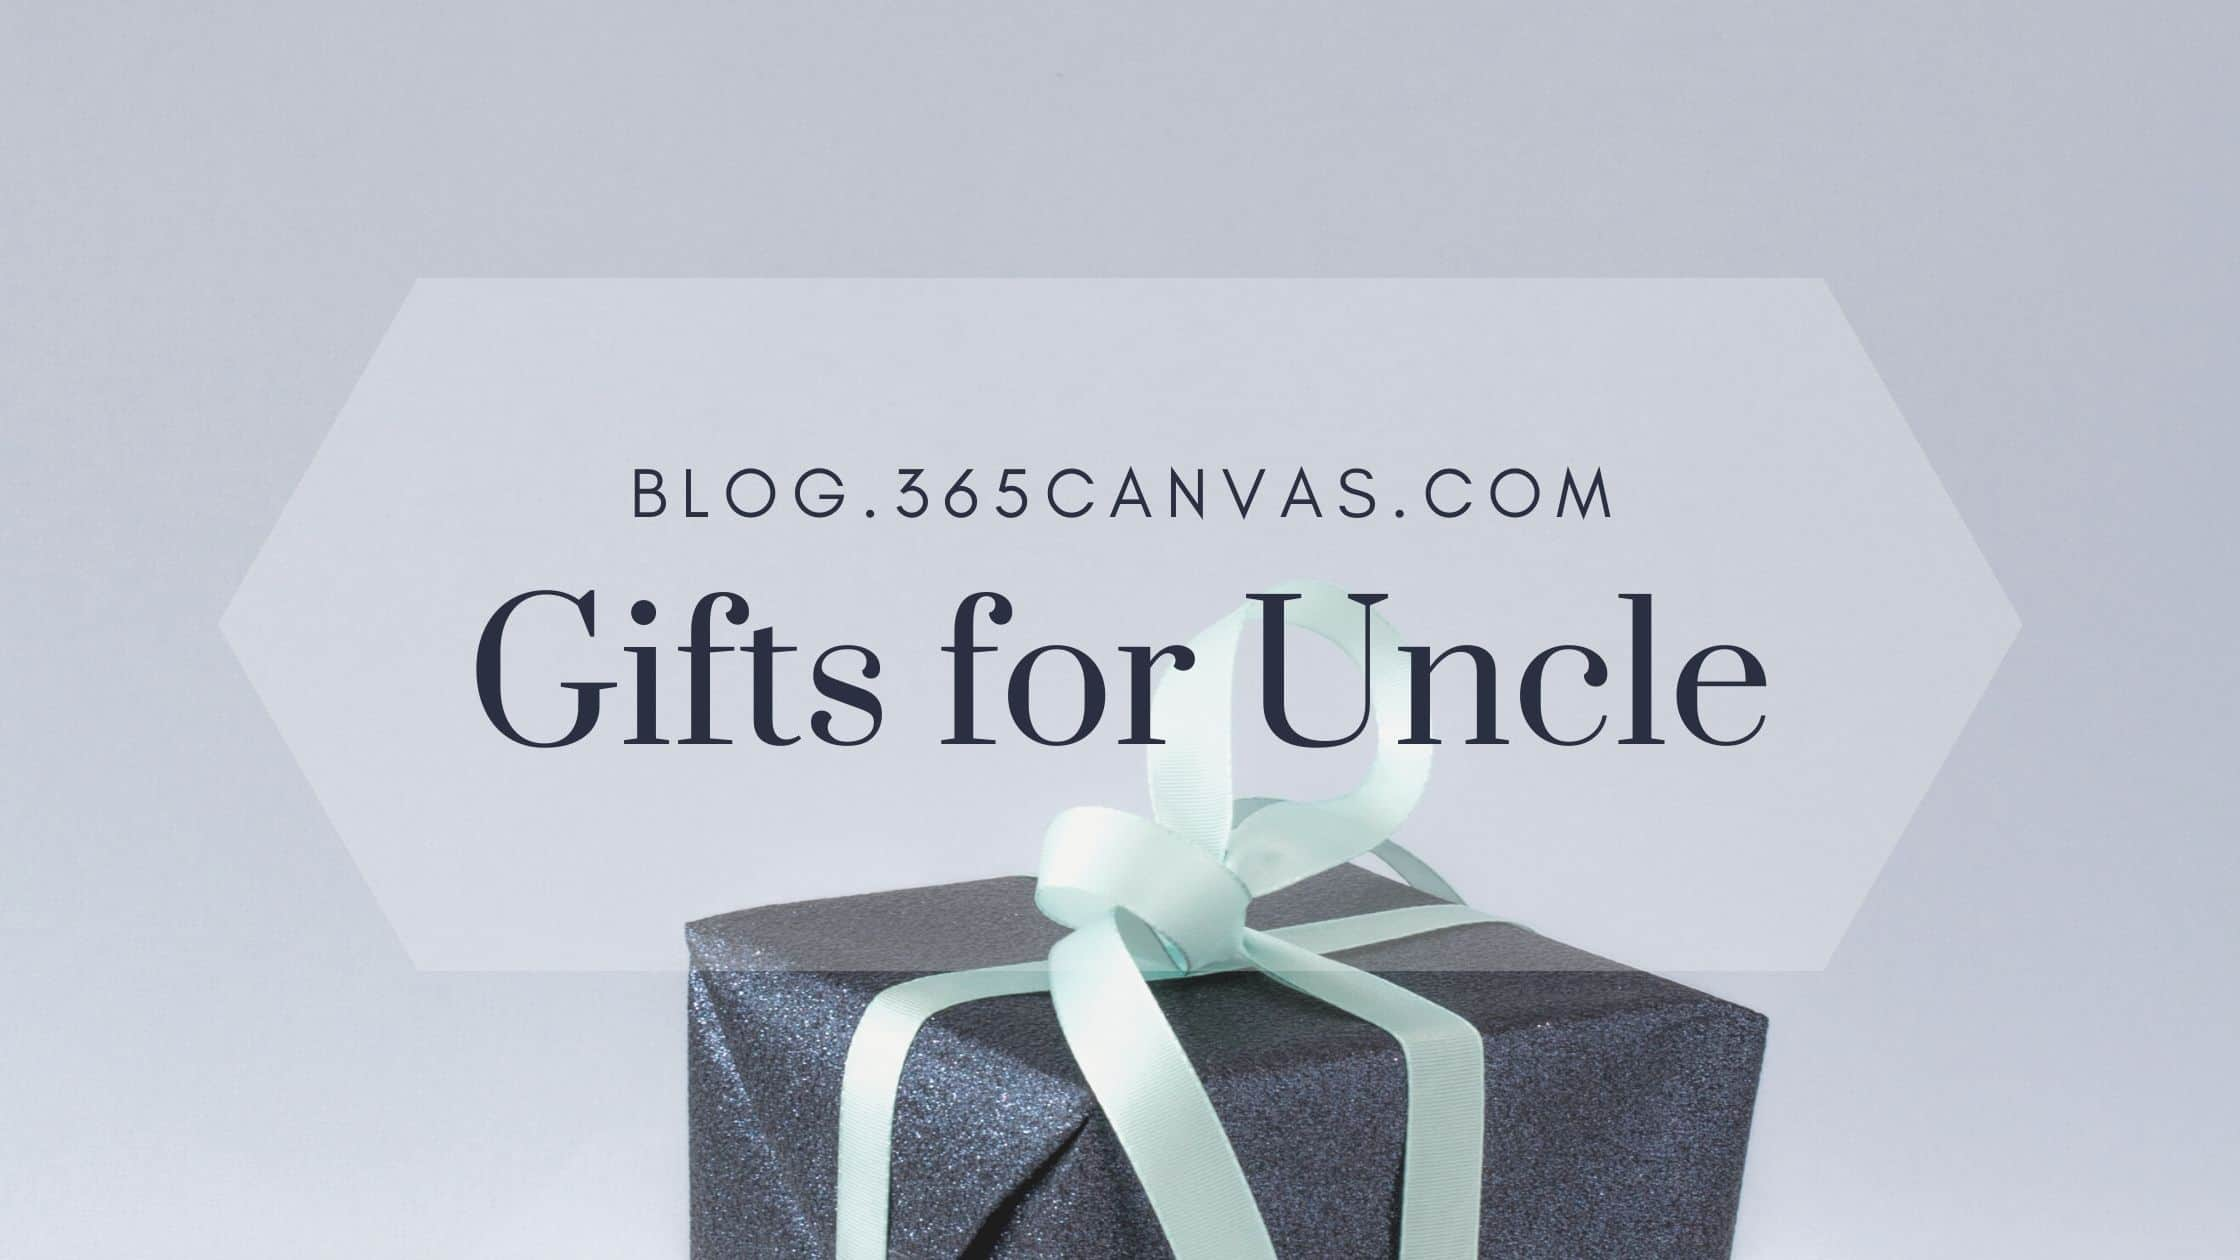 Gifts for Uncle: 50 Coolest Ideas to Make His Day (2020 Gift Guide)